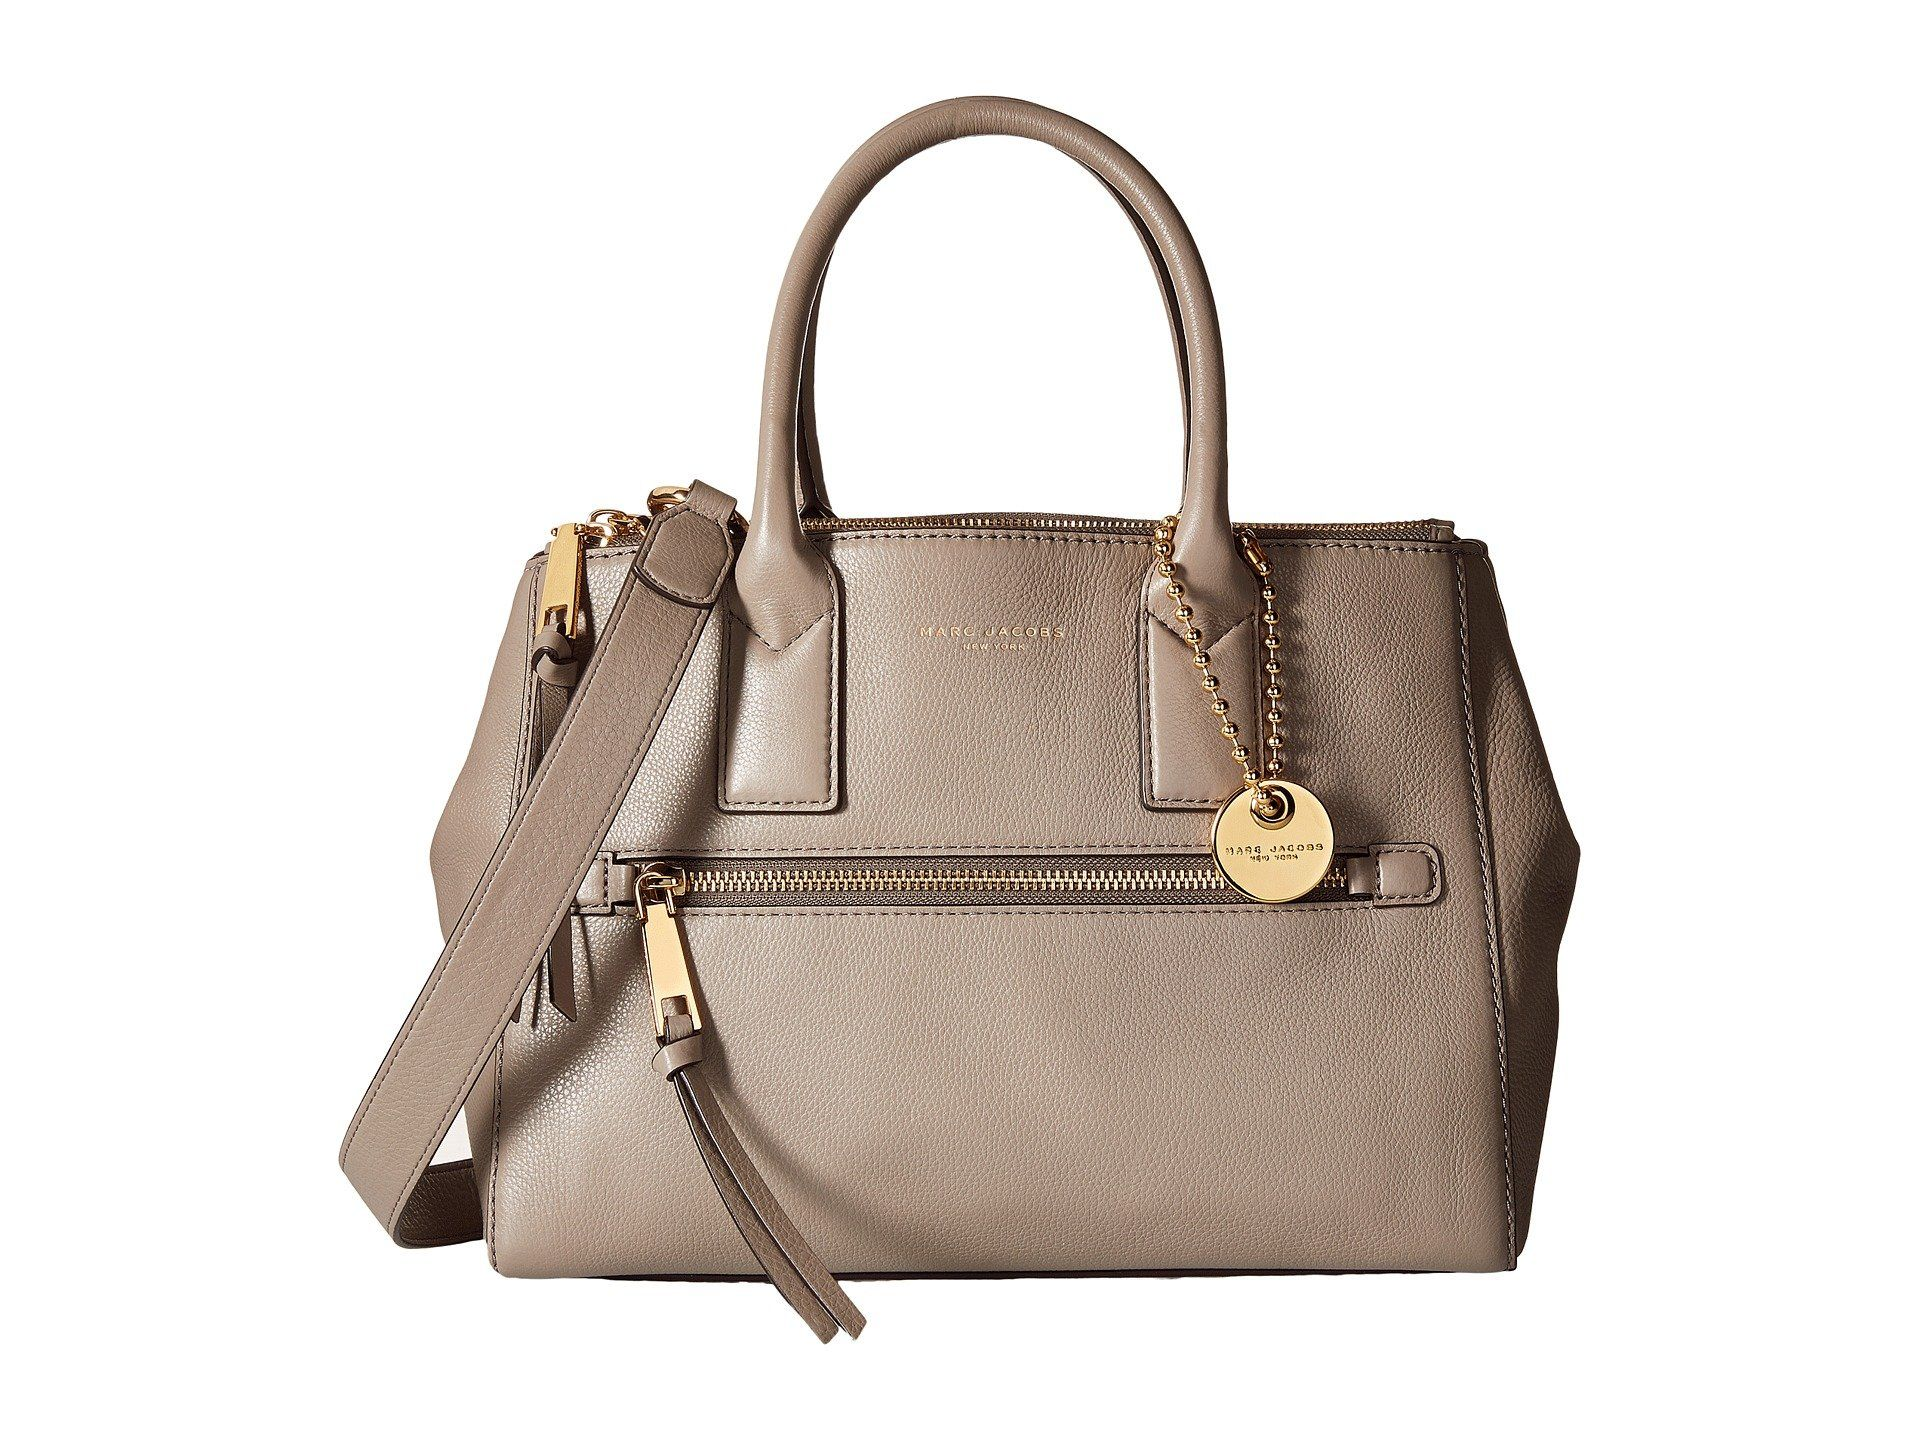 0dc7977330c8 MARC JACOBS Recruit East West Tote.  marcjacobs  bags  shoulder bags  hand  bags  leather  tote